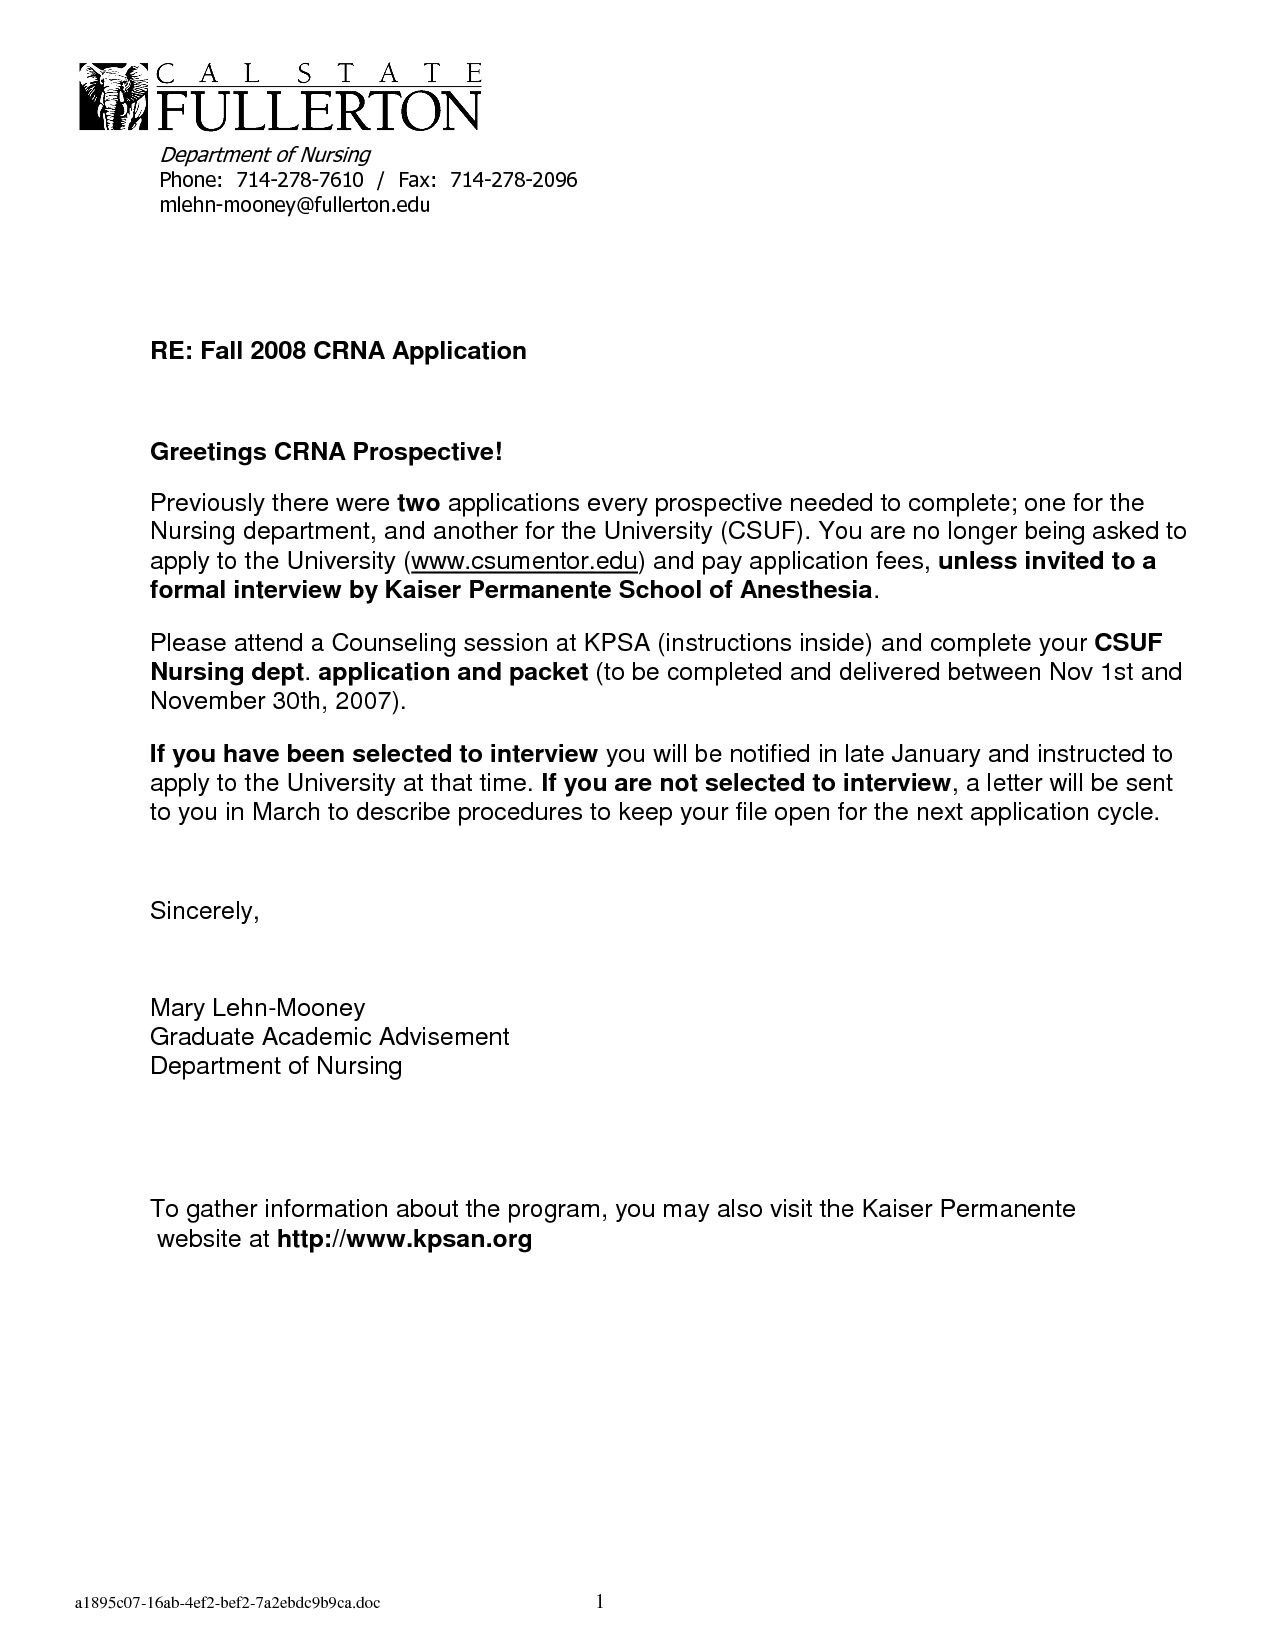 Basic Letter Of Recommendation Template Ozilalmanoofco  Reference With Letter Of Recomendation Template